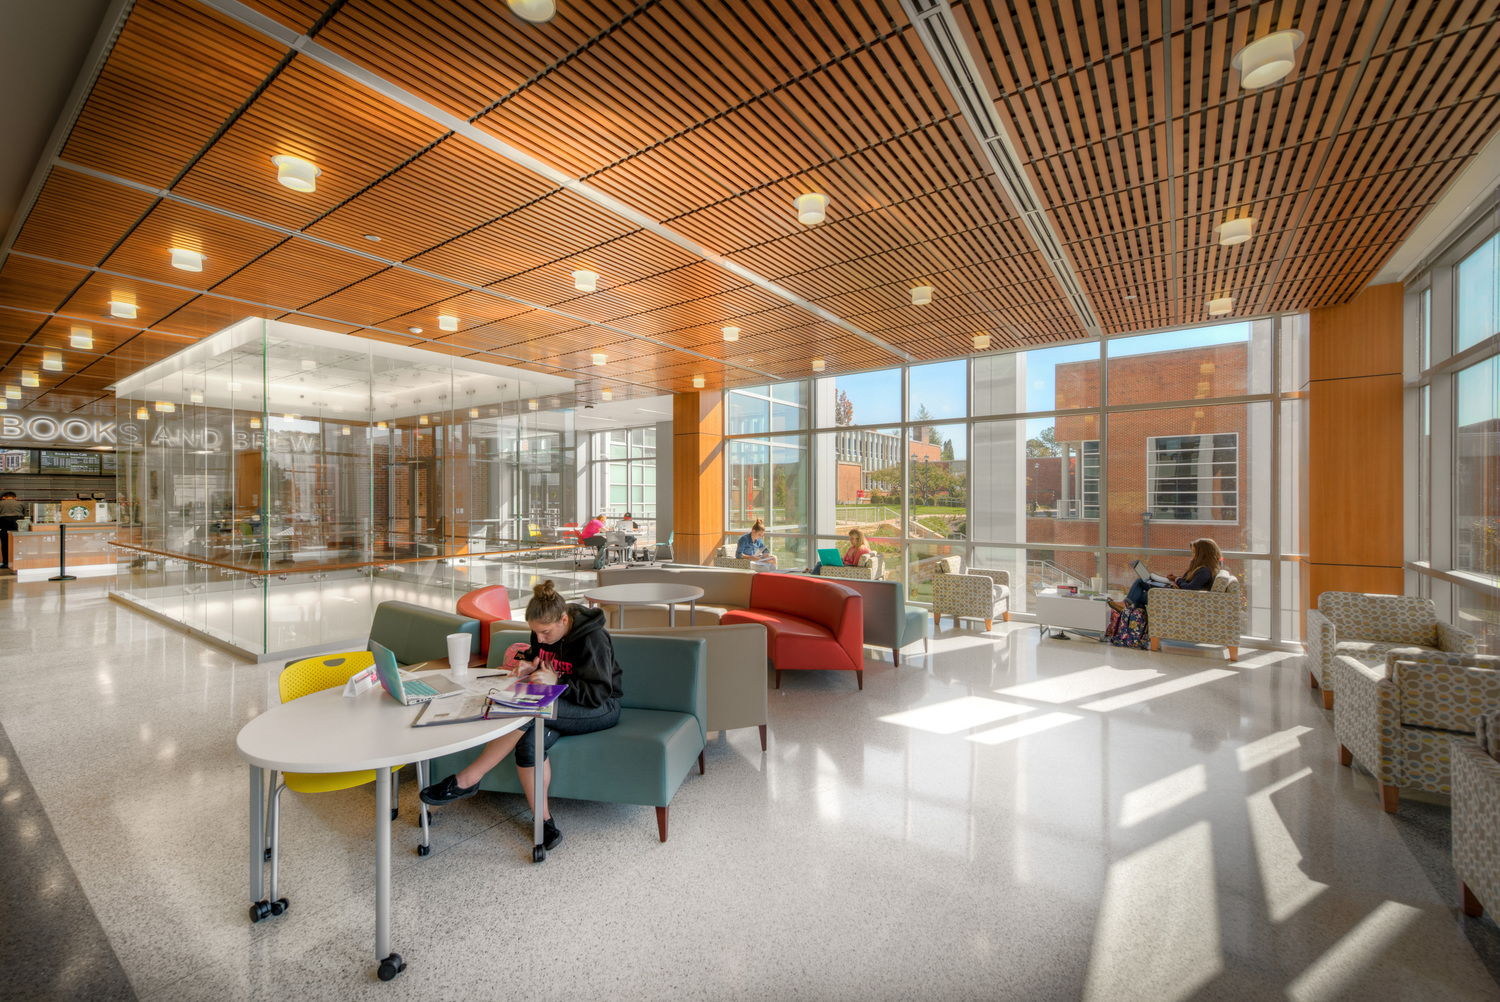 University of Virginia's College at Wise, New Library, Wise, VA